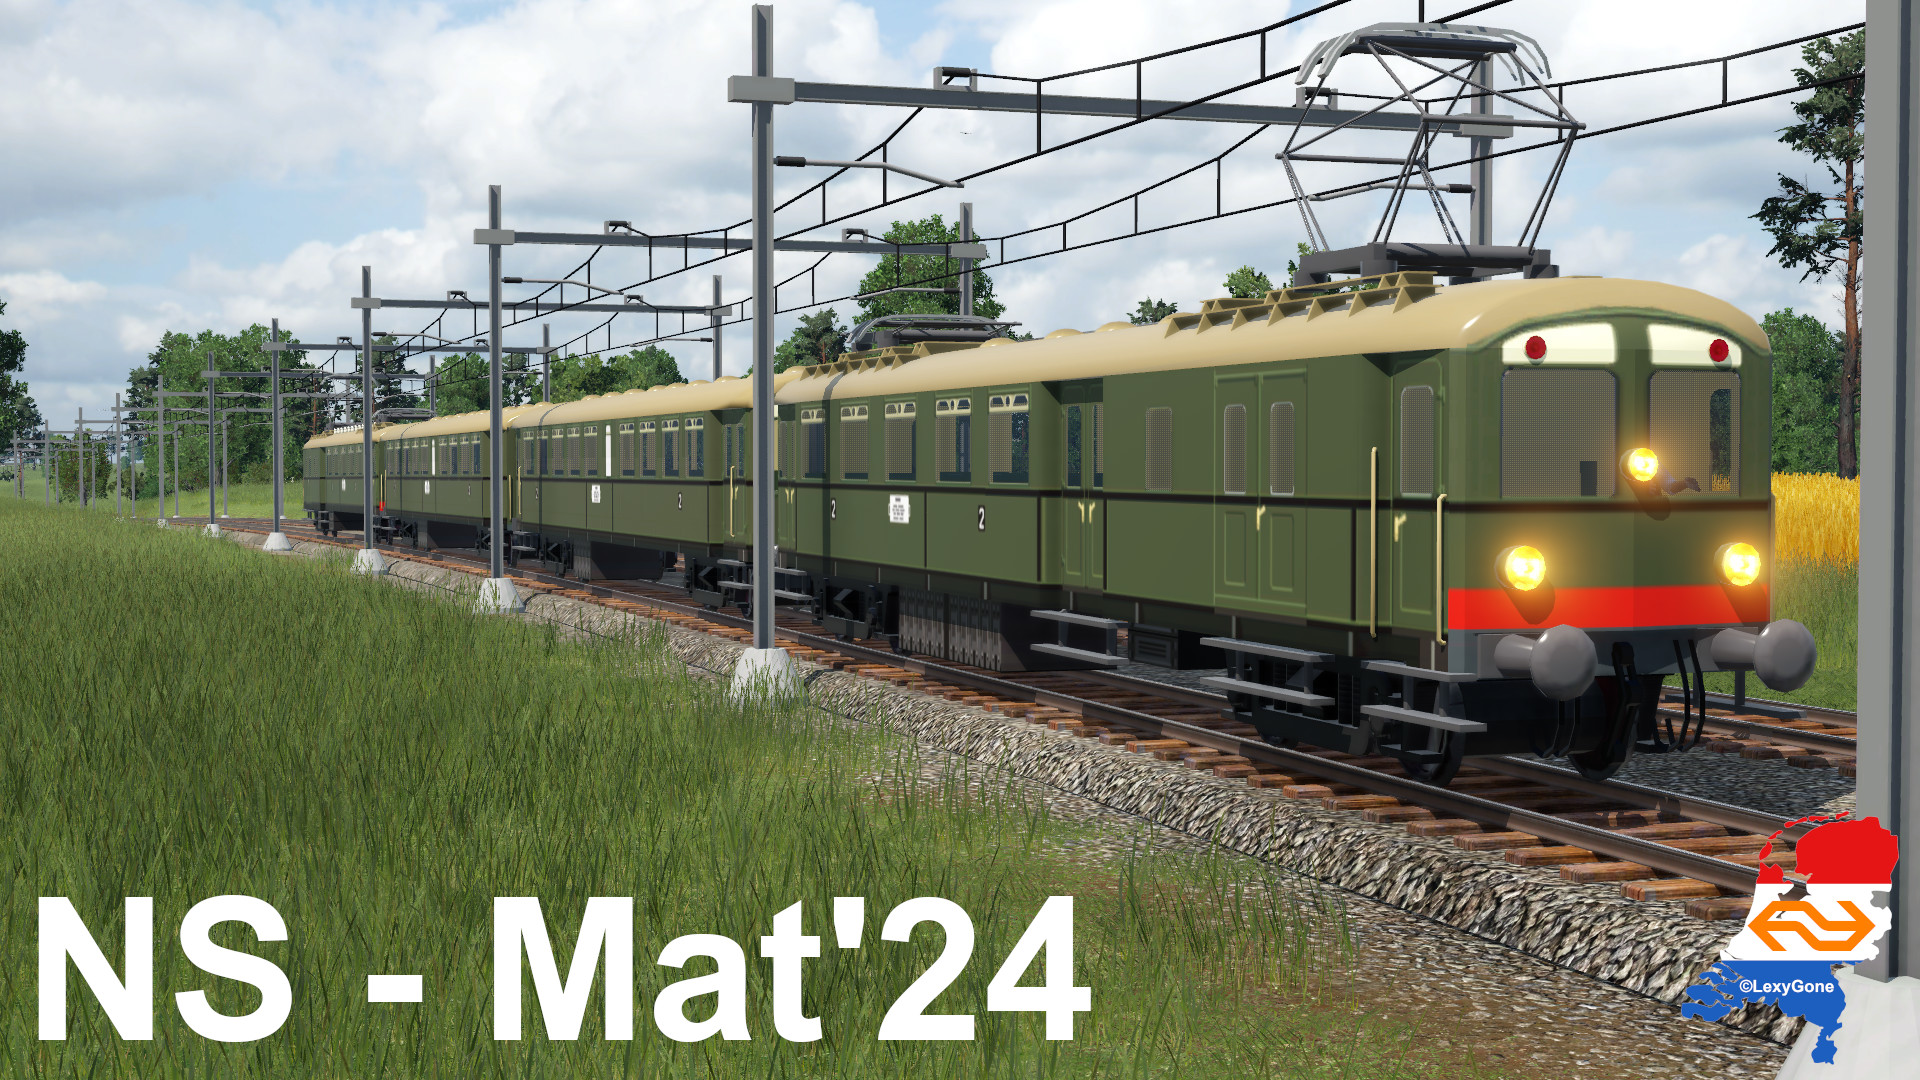 Transport Fever 2 - NS Mat 24 (Blokkendoos)